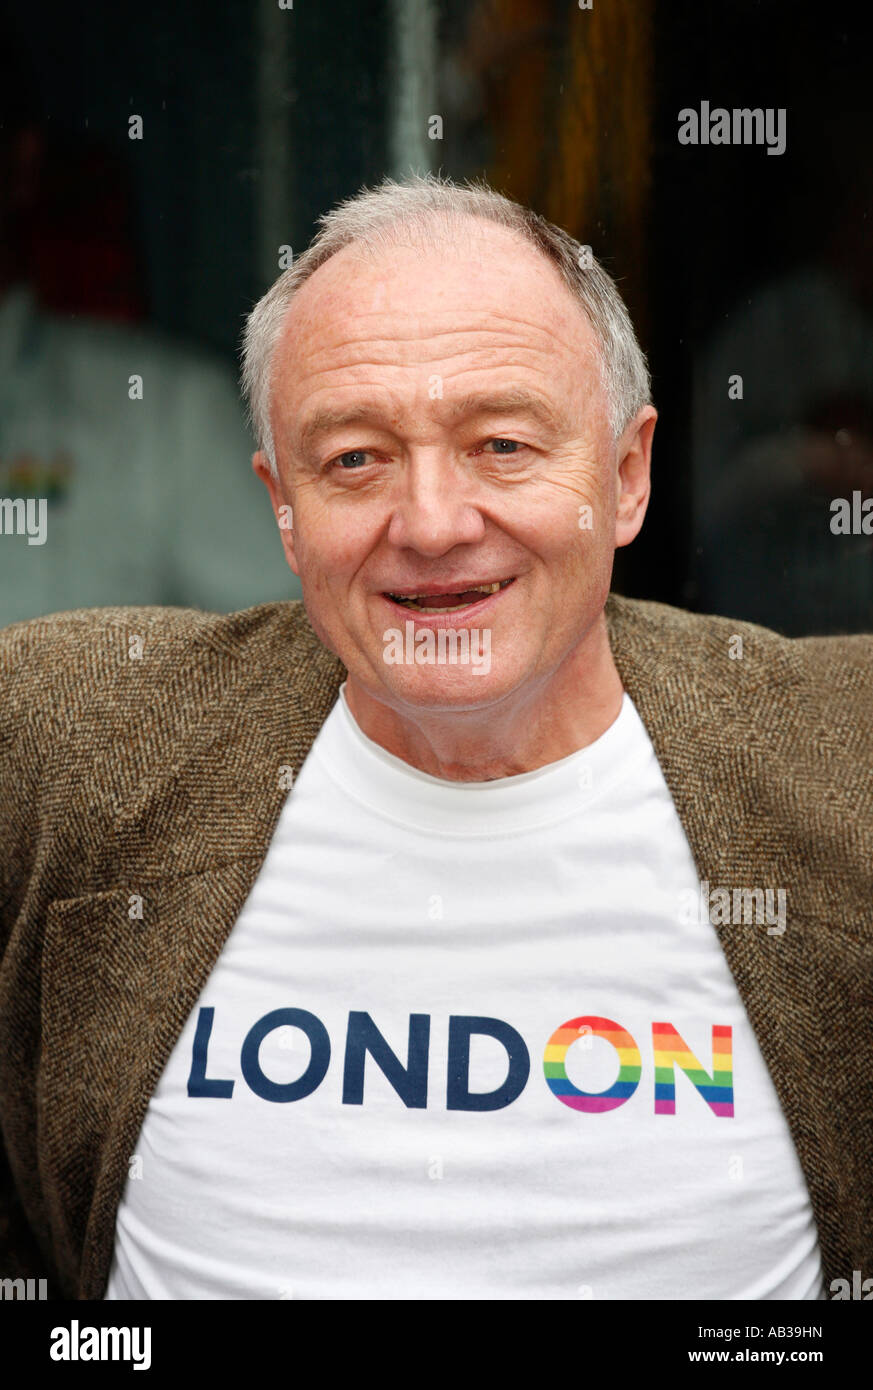 Mayor of London Ken Livingstone at the 2007 London Gay Pride March - Stock Image